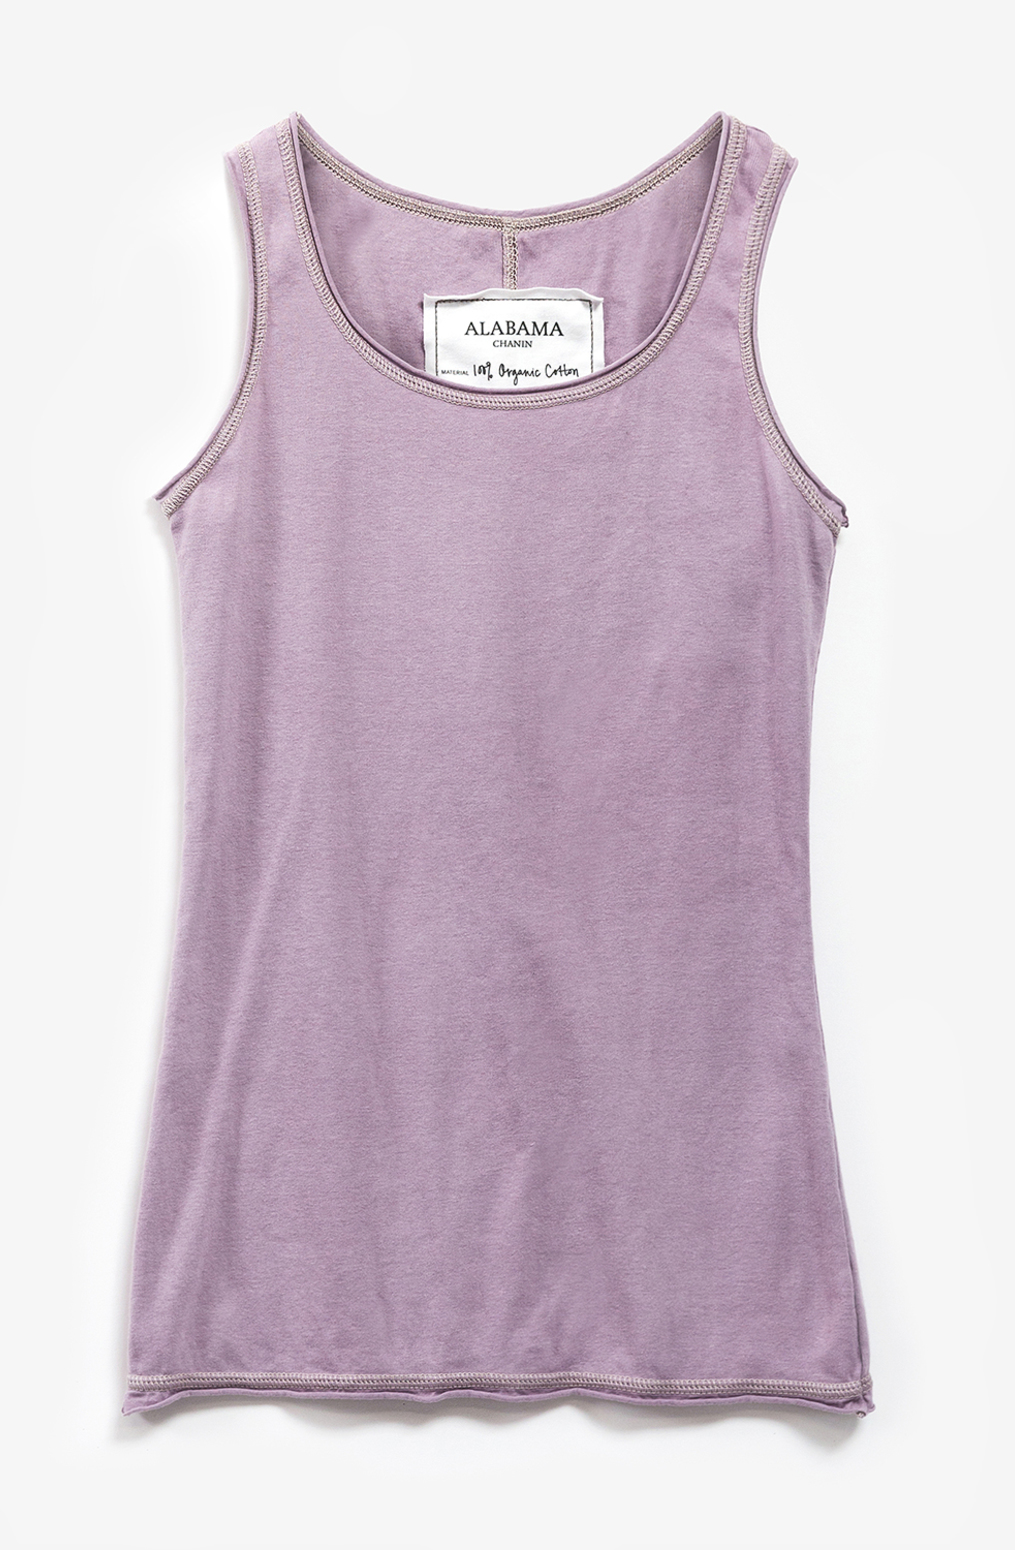 Alabama chanin summer organic cotton layering tank 1